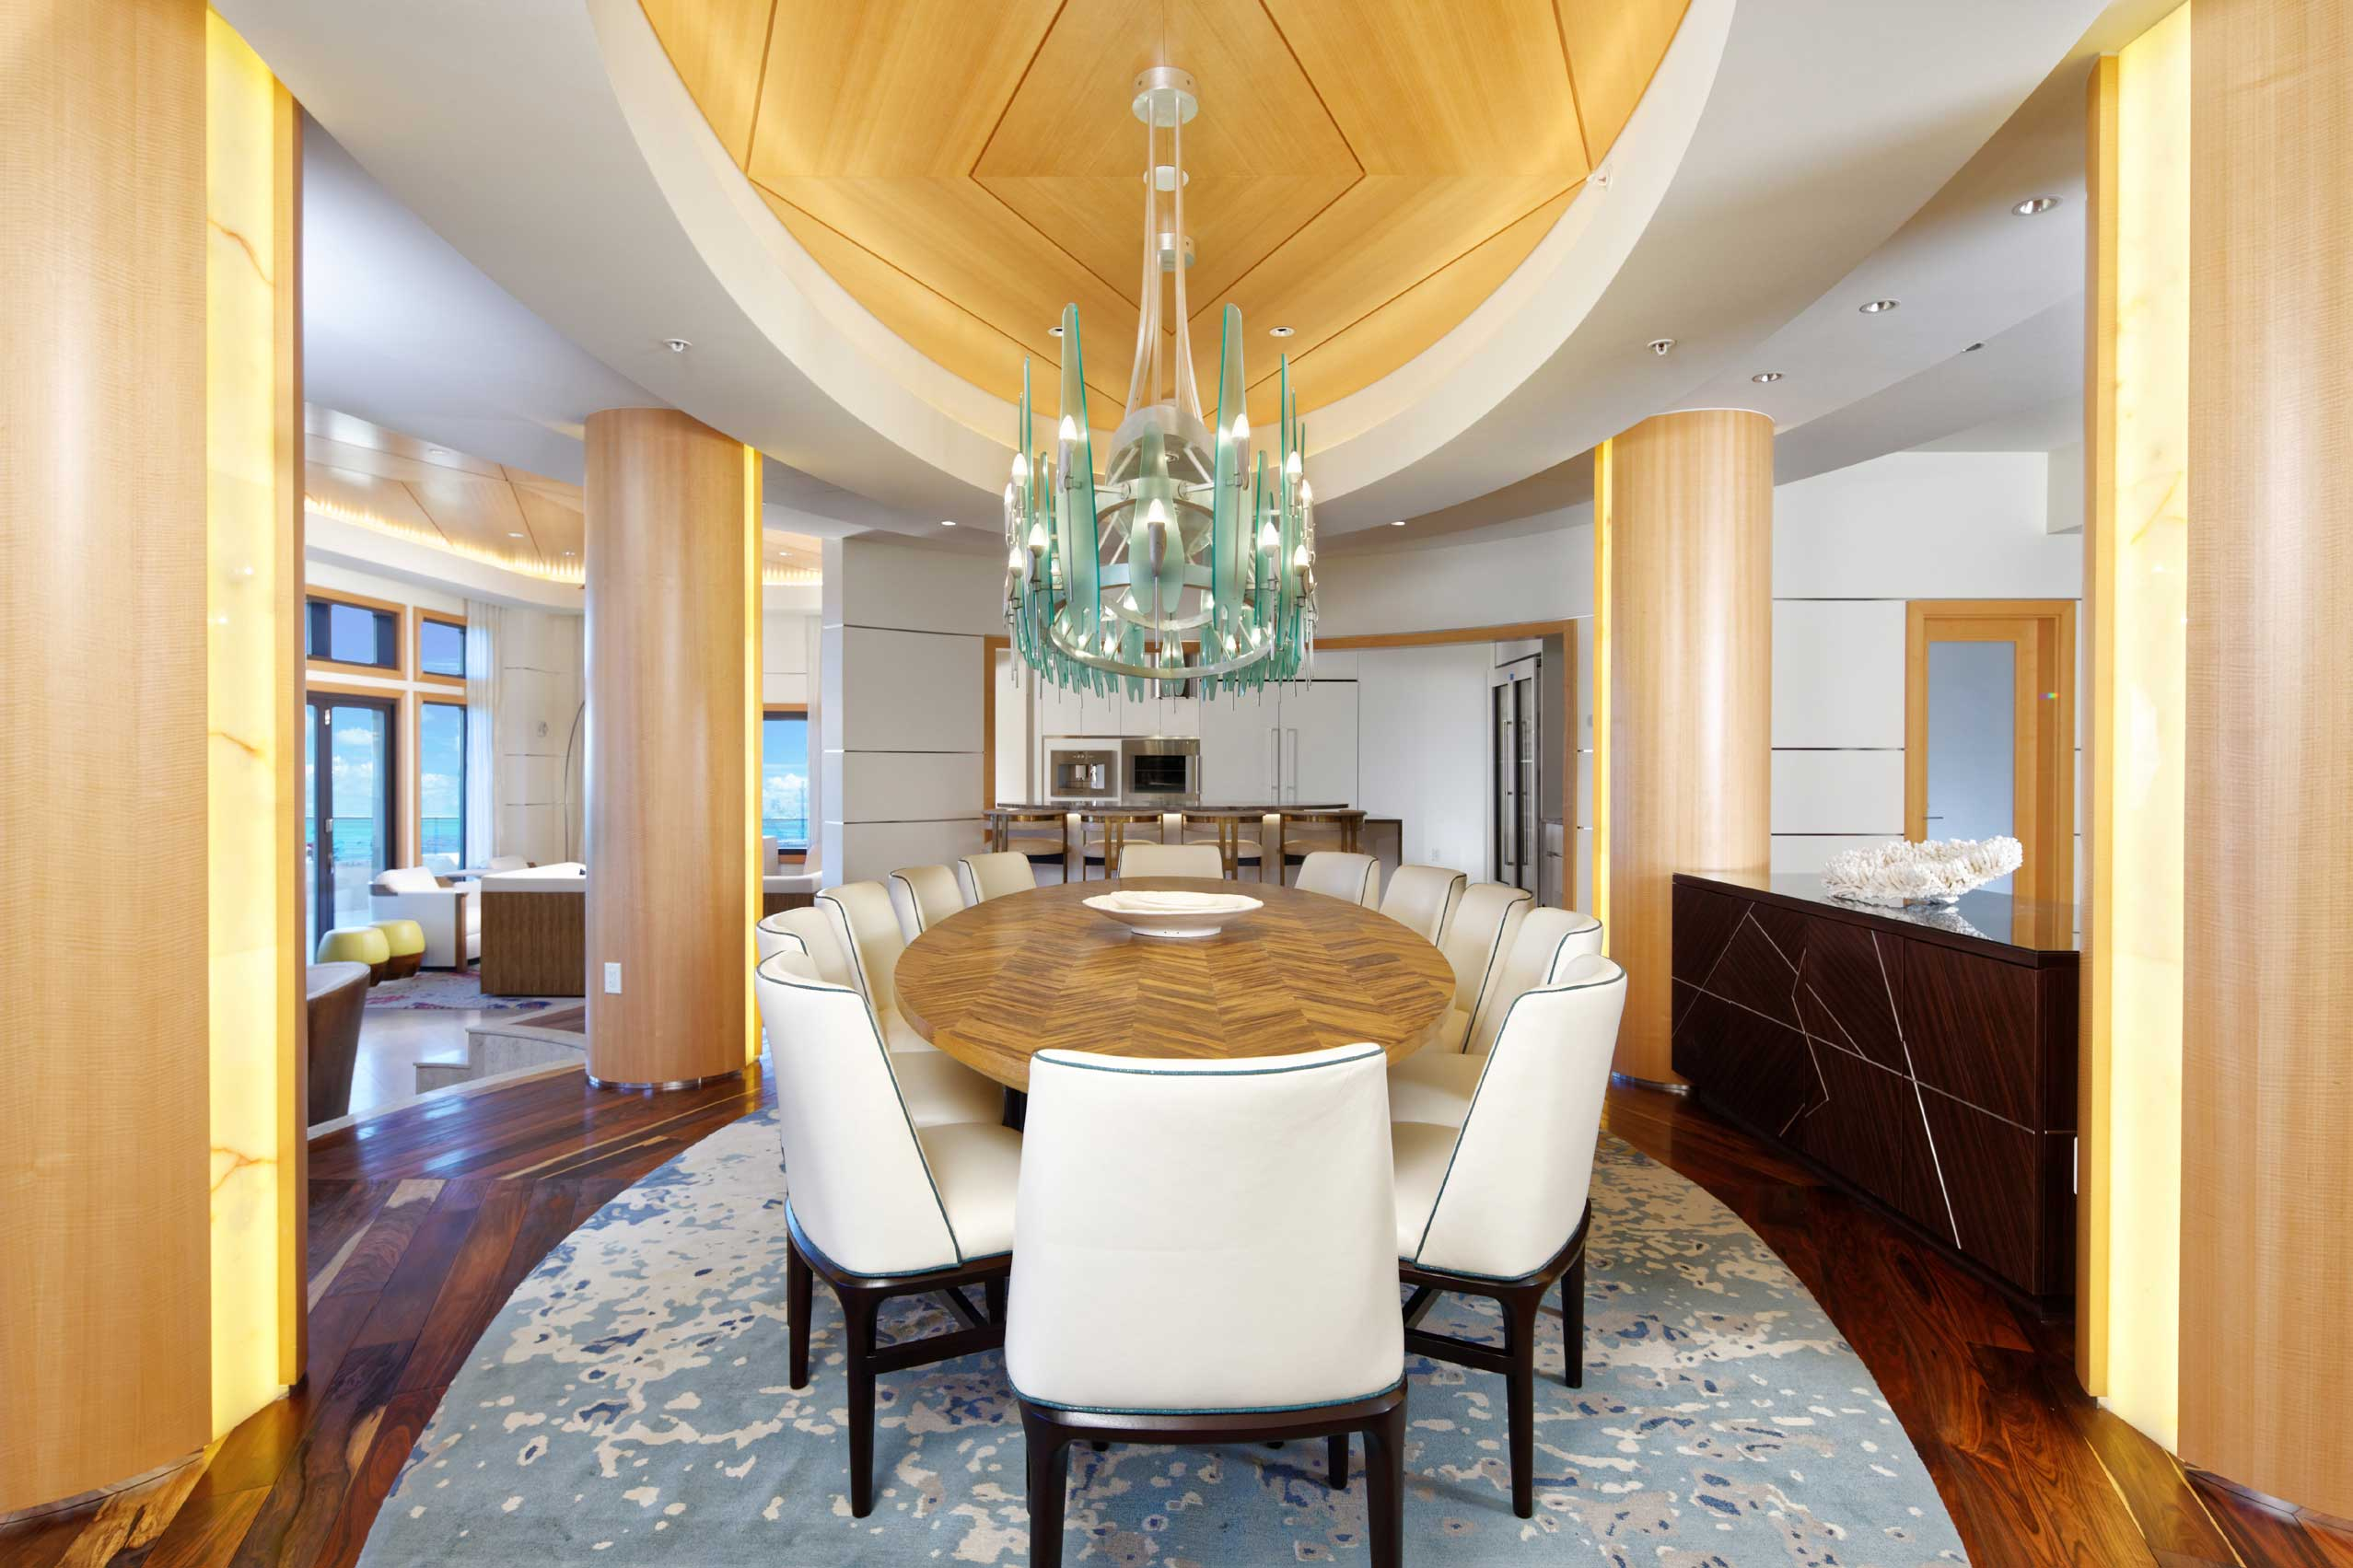 Atop the Ritz-Carlton Grand Cayman, 700 Seven South is one of the Caribbean's finest properties. The interior boasts impeccable finishes throughout, including this striking bespoke light fixture suspended above the dining room table.